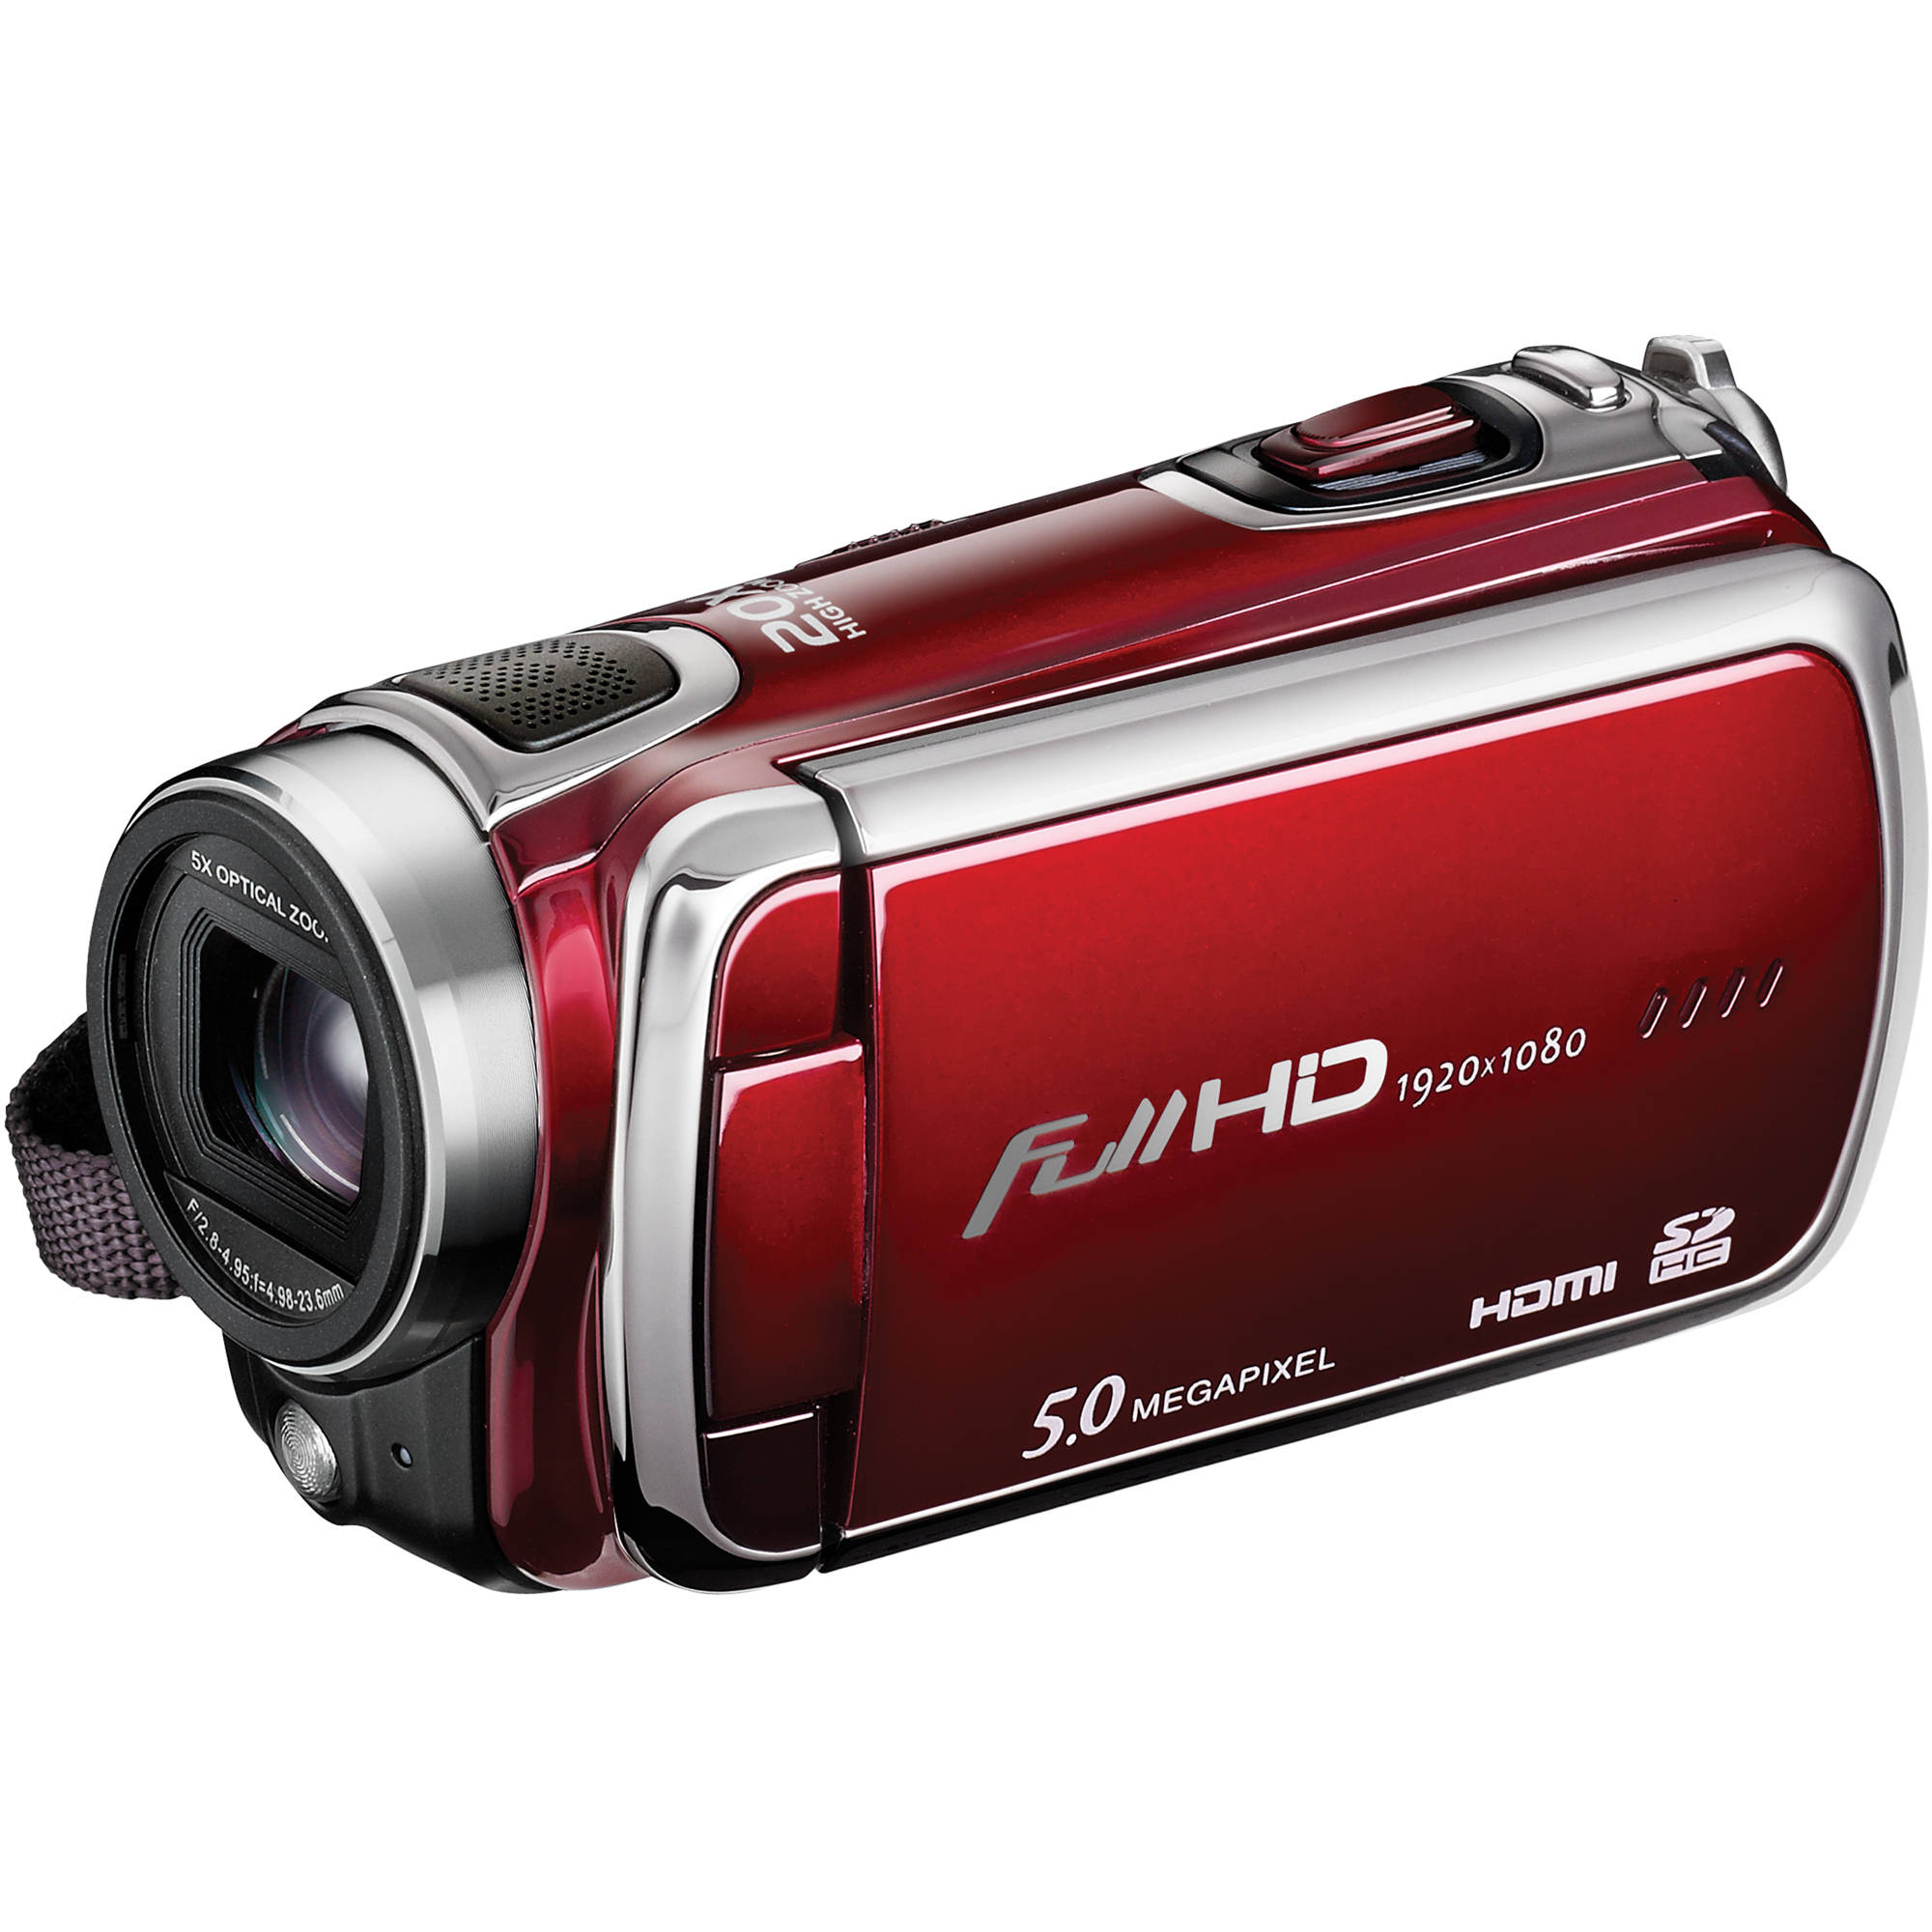 DXG Pro Gear Series DXG-5F0VR HD Camcorder (Red)